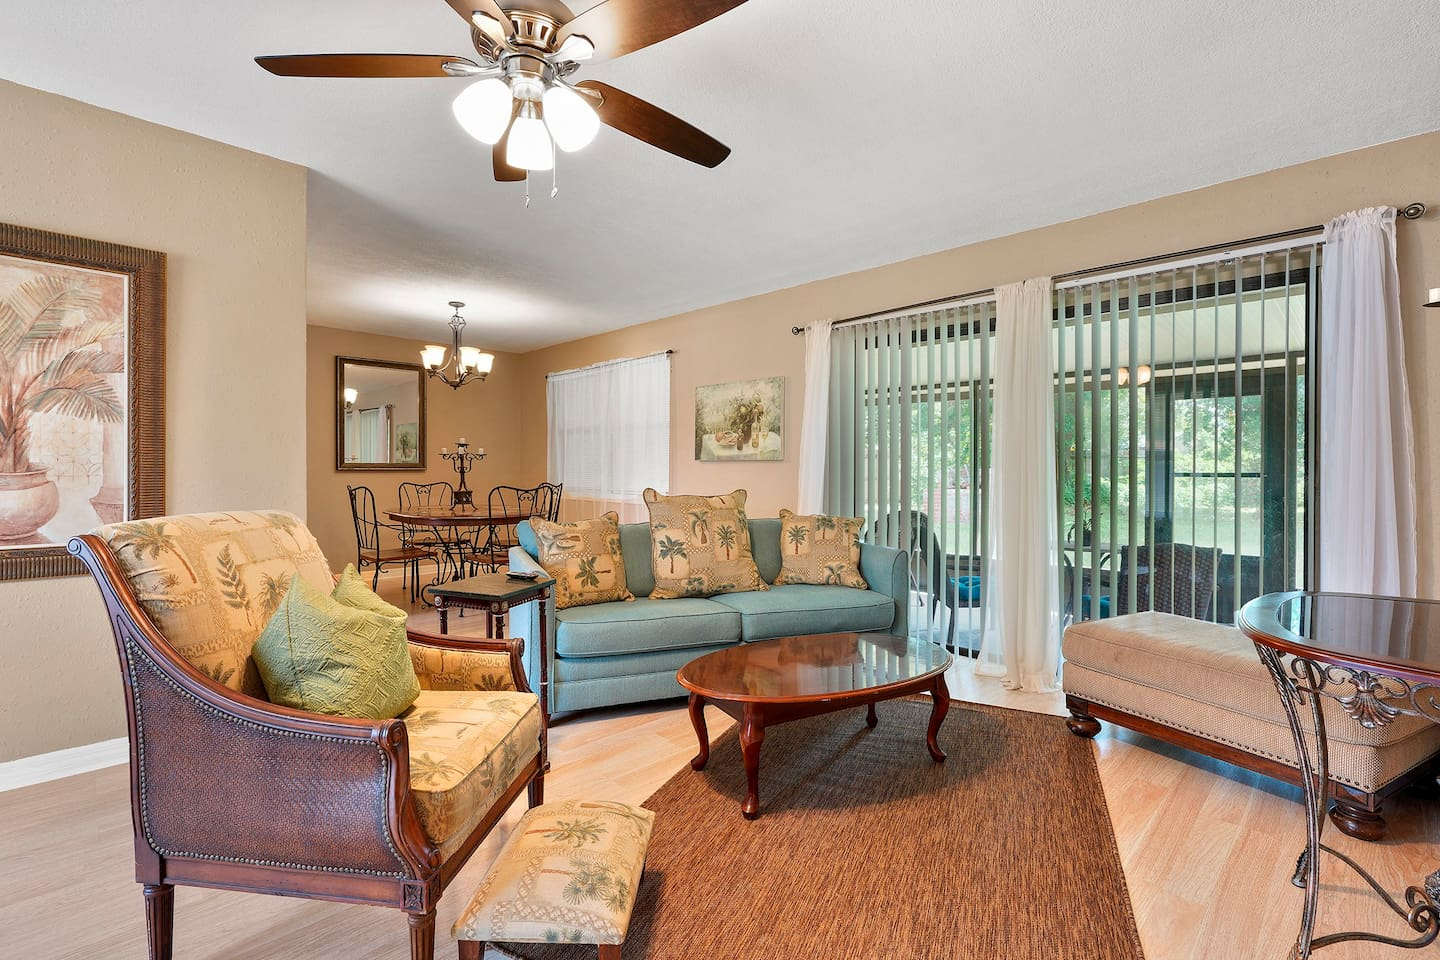 Enjoy relaxing in our beautiful private home in the heart of Jacksonville